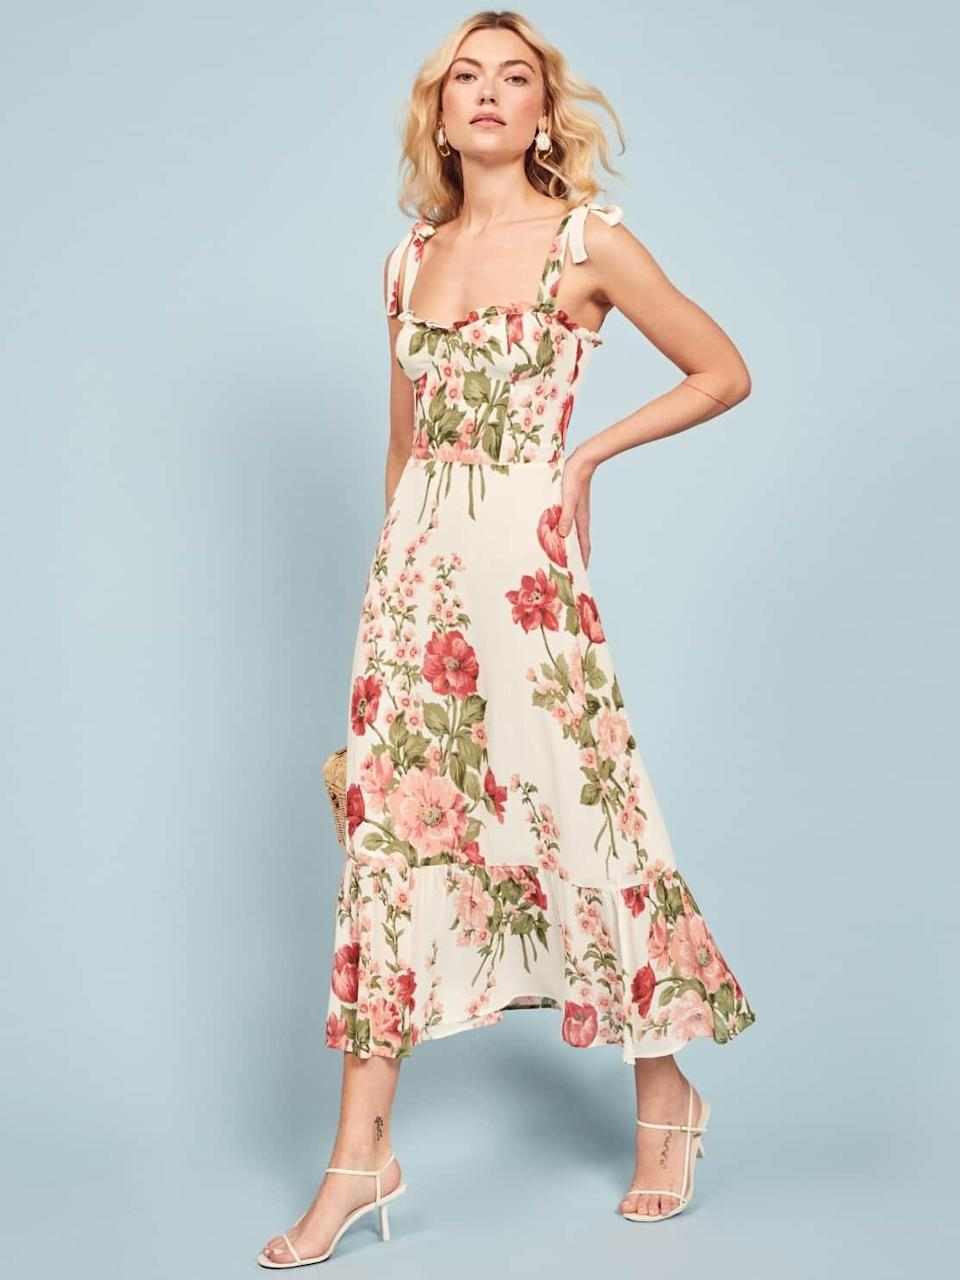 """<p>With its complete transparency and retro designs, Reformation has quickly become one of the leading sustainable brands out there. <a href=""""https://www.popsugar.com/fashion/Selena-Gomez-Red-Reformation-Dress-43731361"""" class=""""link rapid-noclick-resp"""" rel=""""nofollow noopener"""" target=""""_blank"""" data-ylk=""""slk:Selena Gomez is just one of the many starlets"""">Selena Gomez is just one of the many starlets</a> who have been spotted wearing the brand. </p> <p><strong>What We'd Buy</strong>: <span>Reformation Nikita Dress</span> ($248)</p>"""